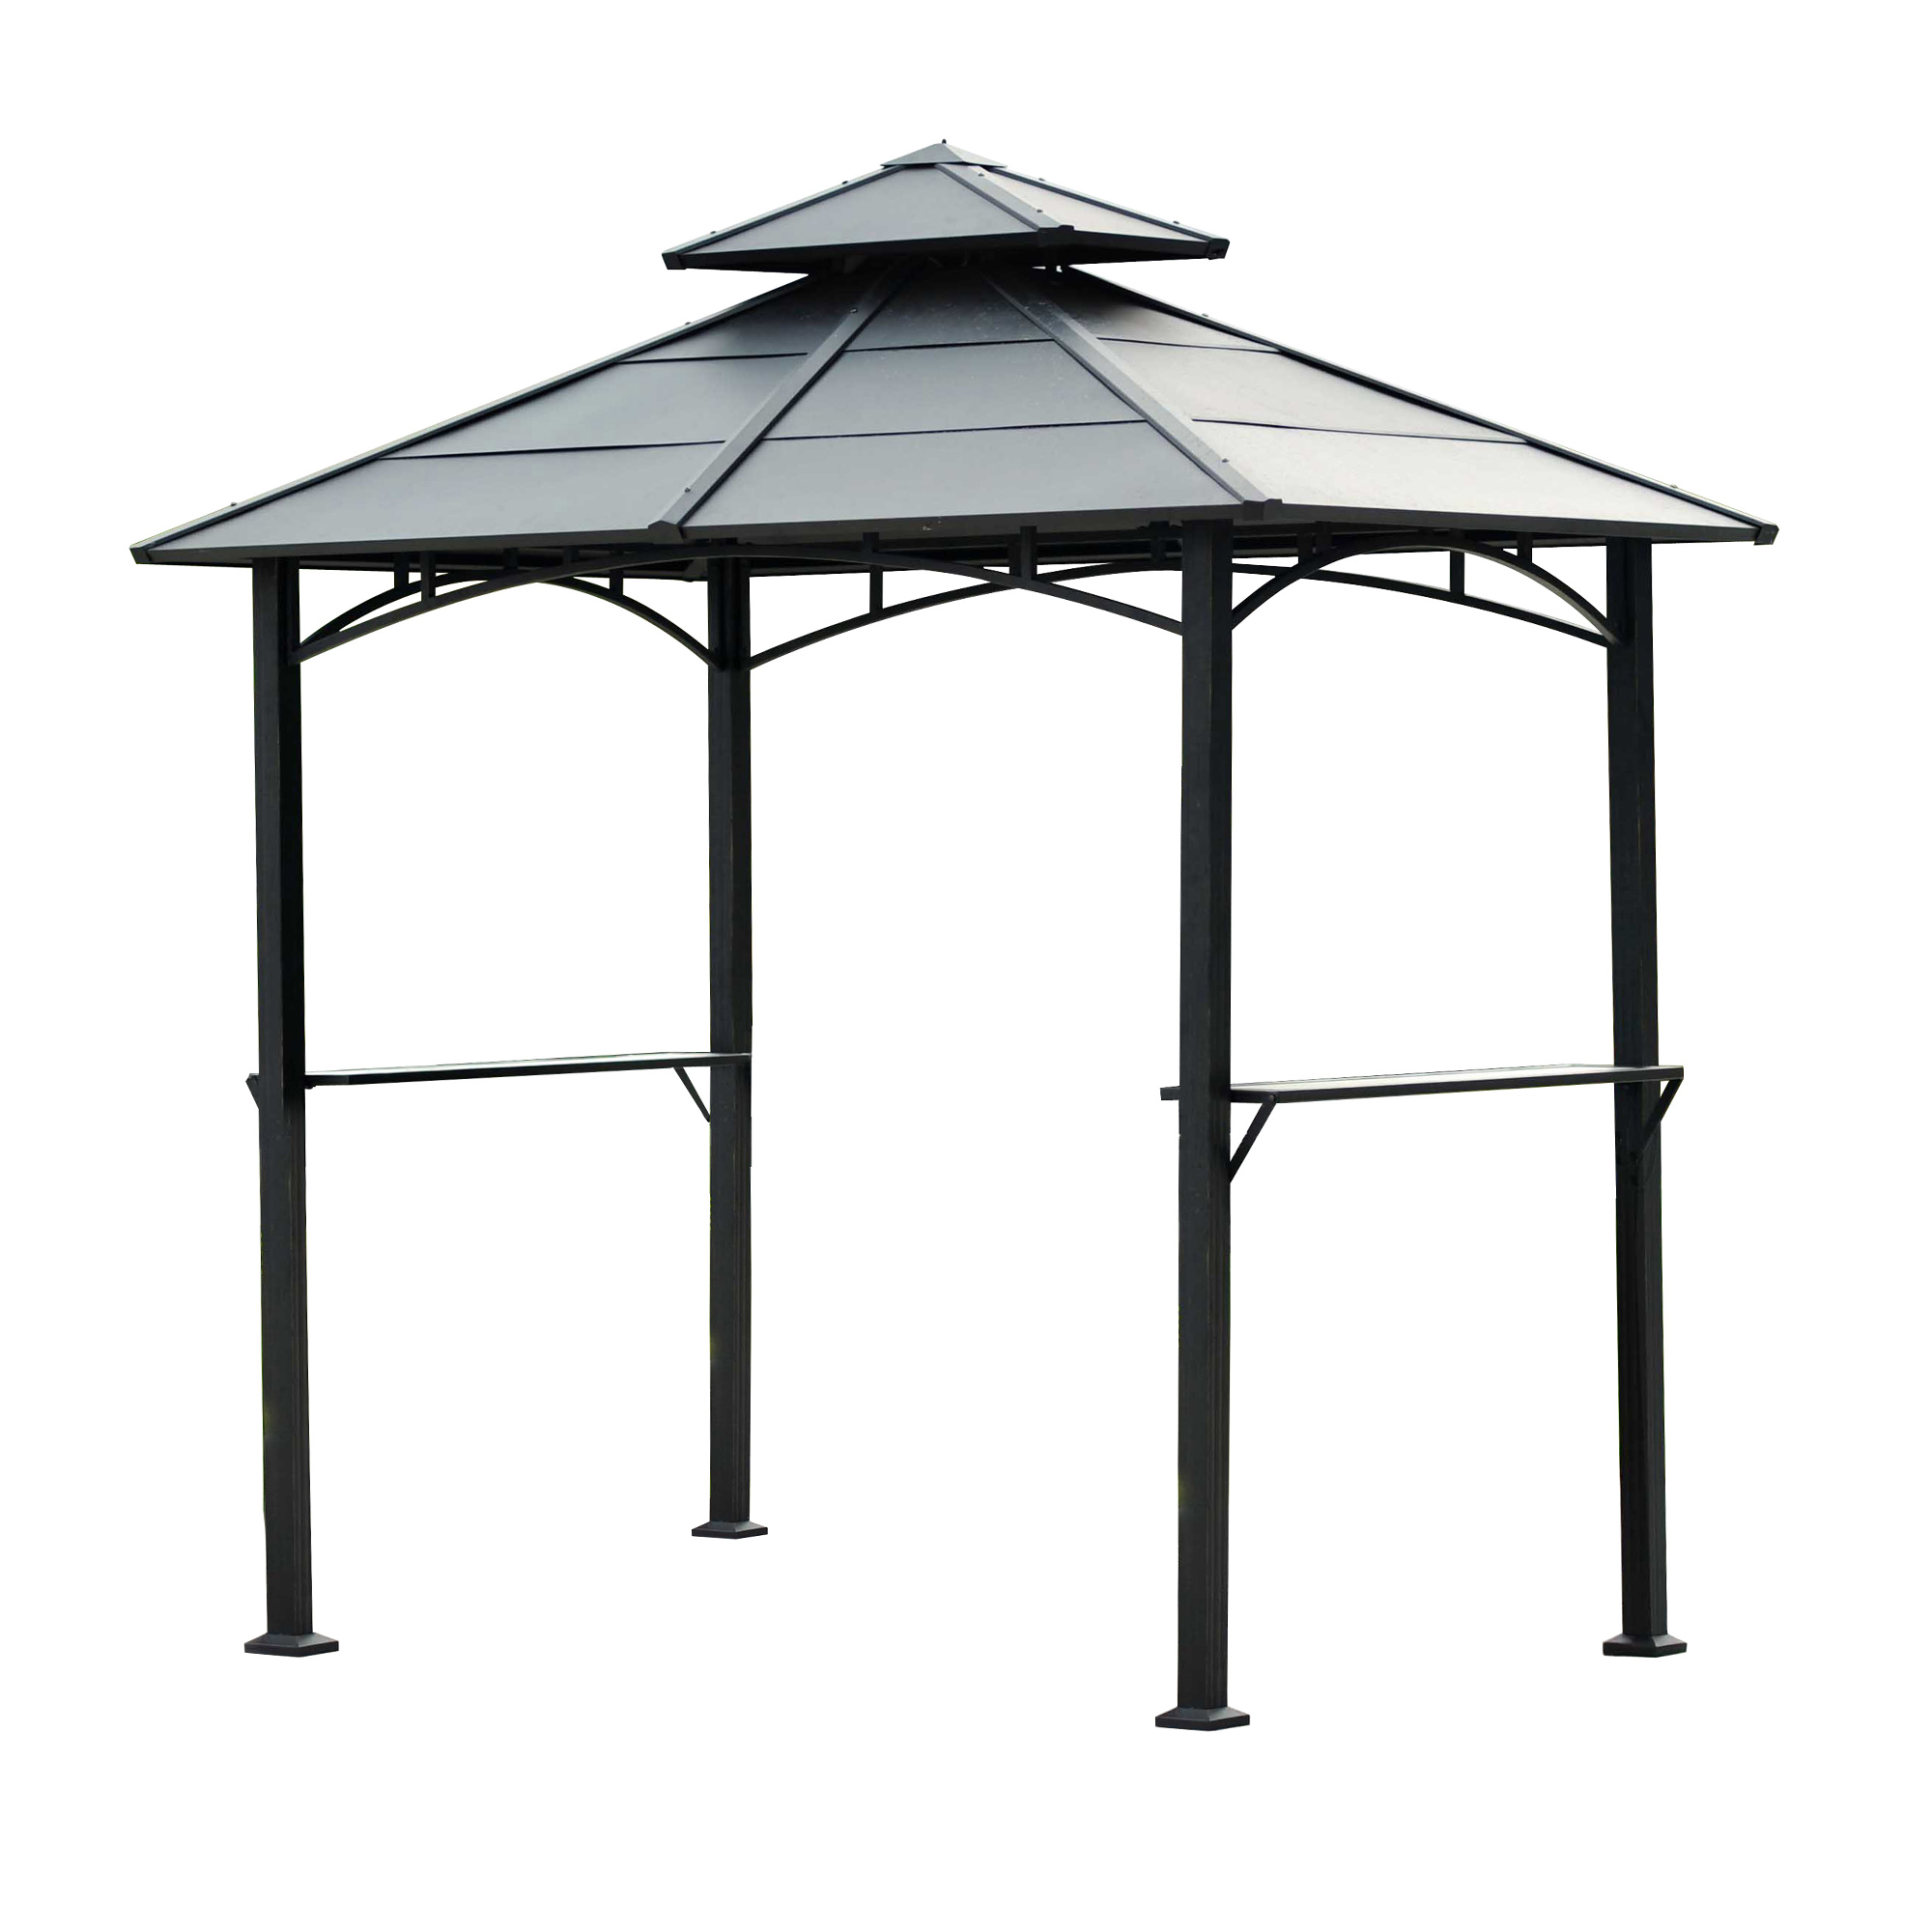 Sunjoy Harper Hard Top Grill Gazebo